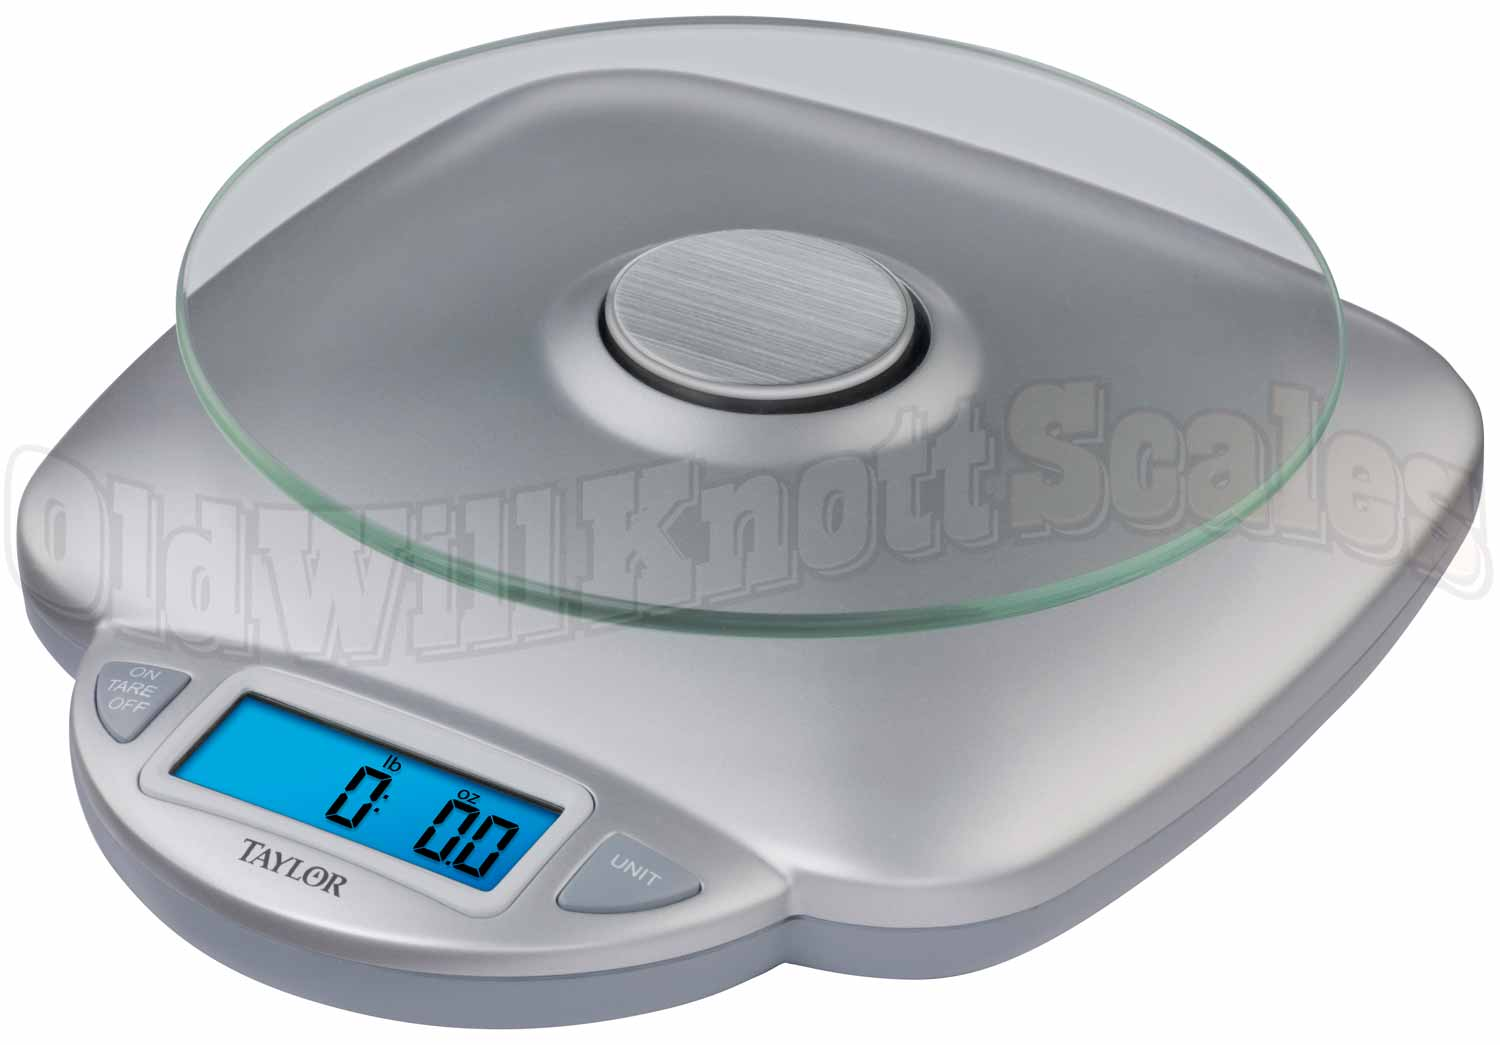 scales depot kitchen n home gadgets sportsman b cooking the food tools scale preparation ssdscale analog